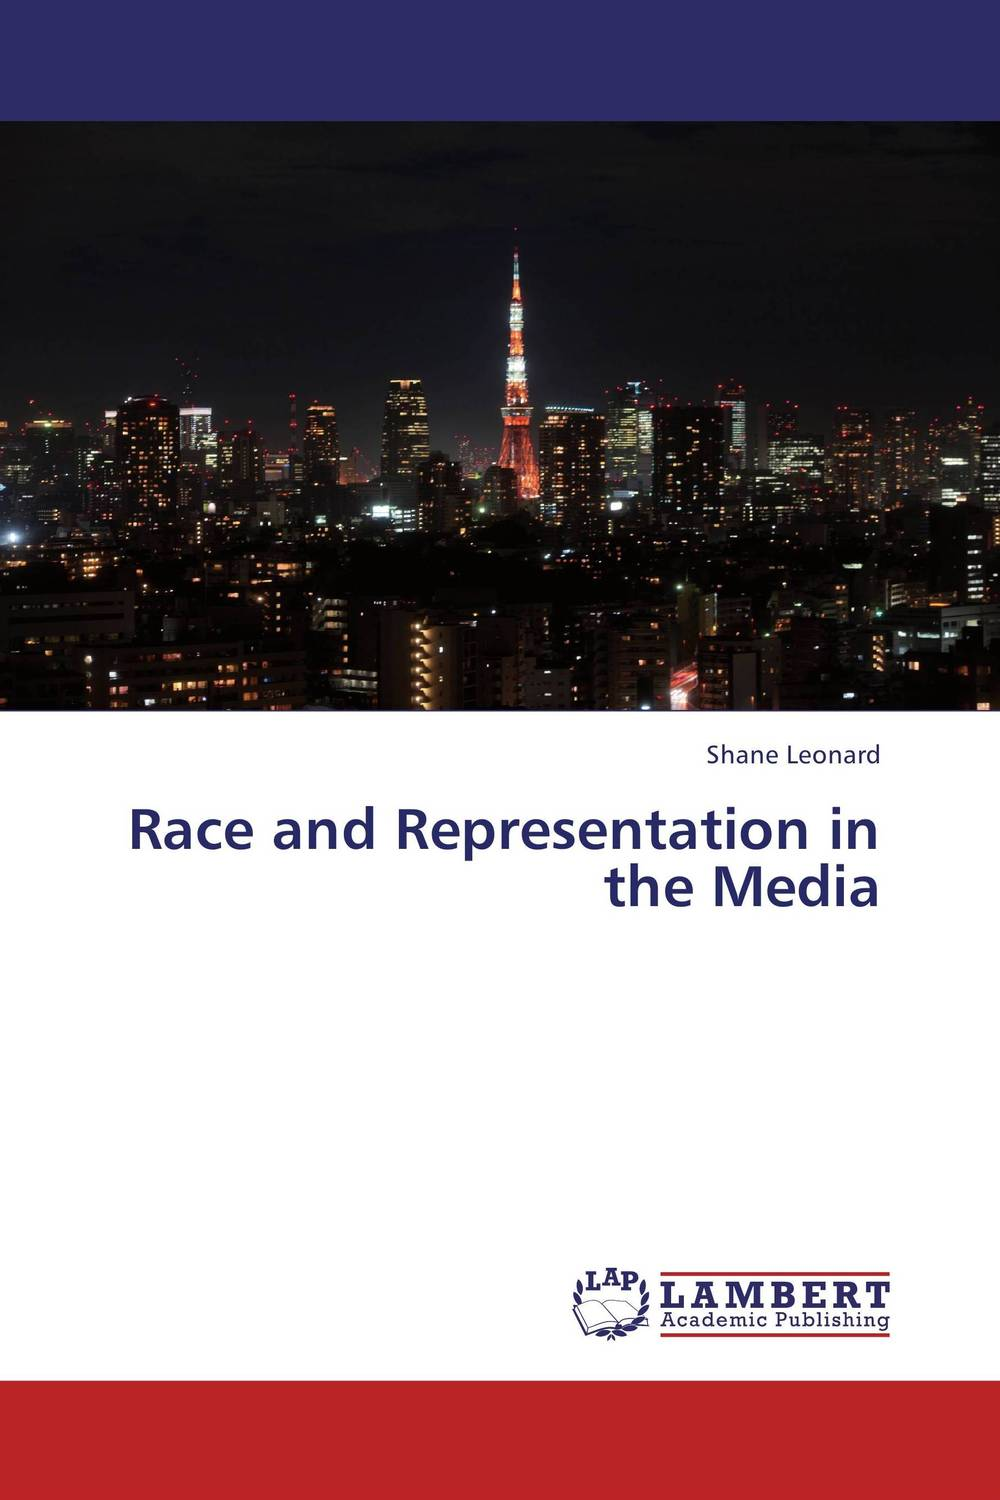 Race and Representation in the Media